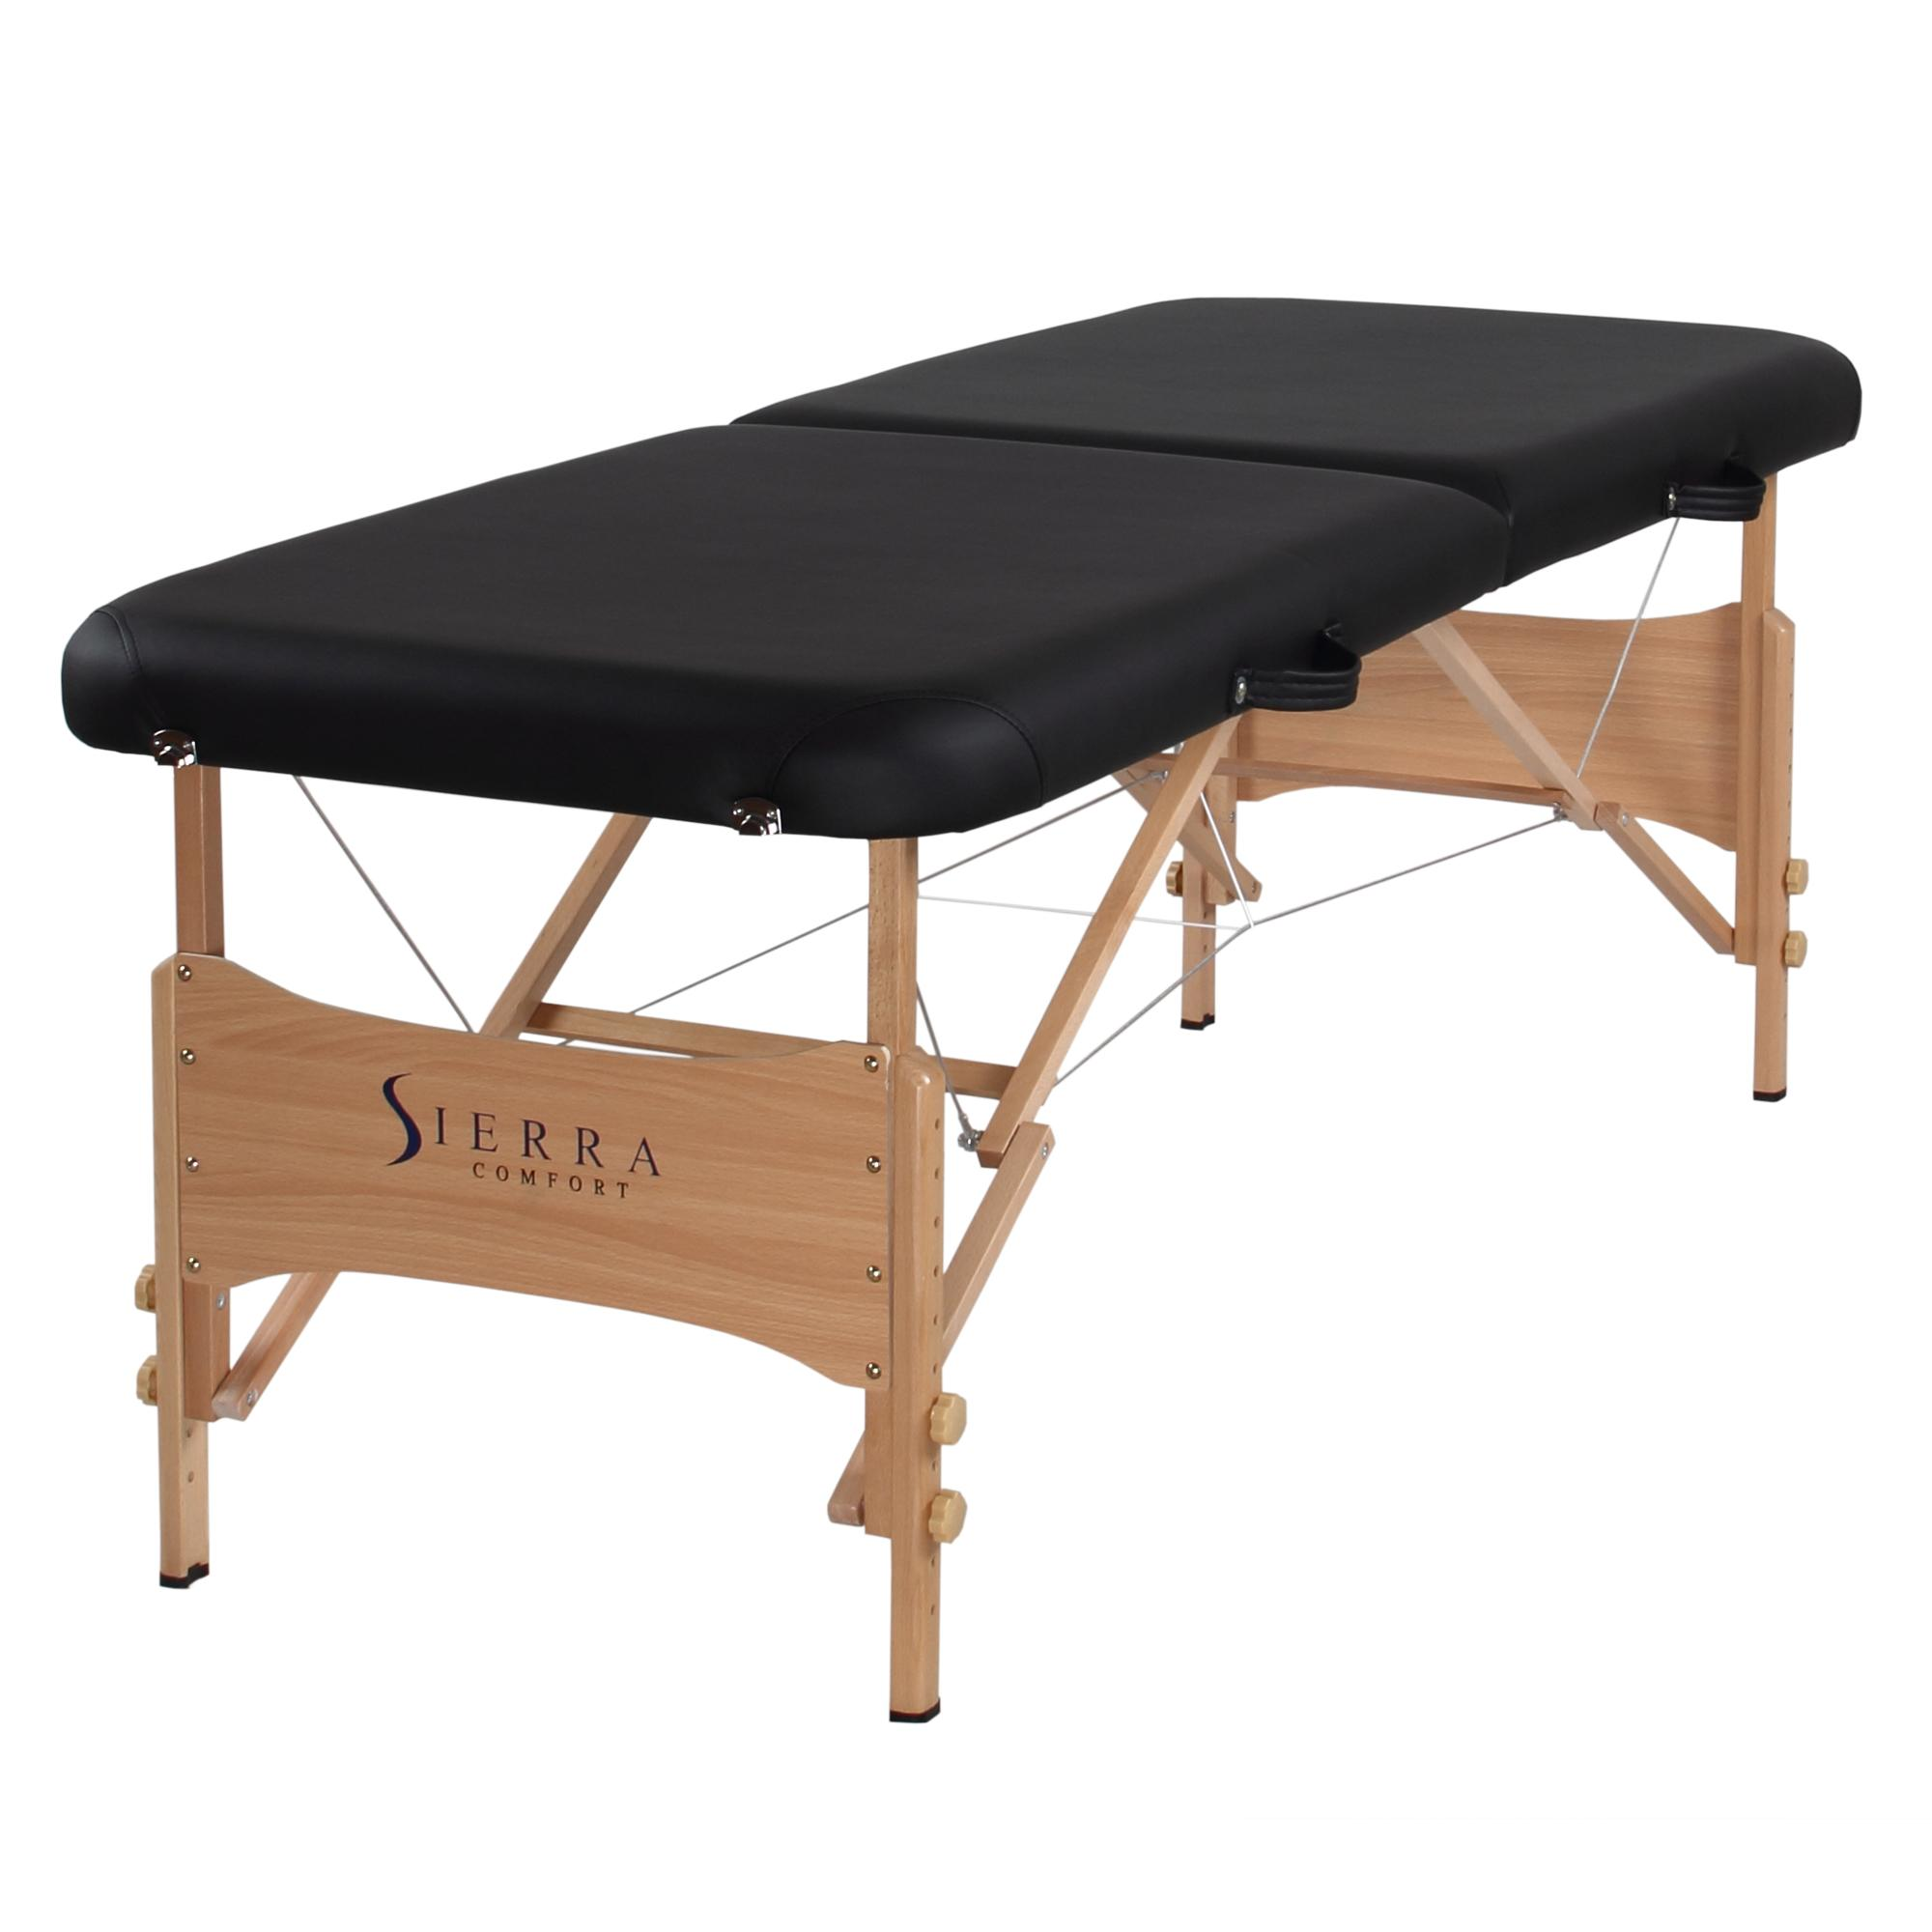 pdp luxe sierracomfort wayfair table massage more portable ca reviews sierra comfort